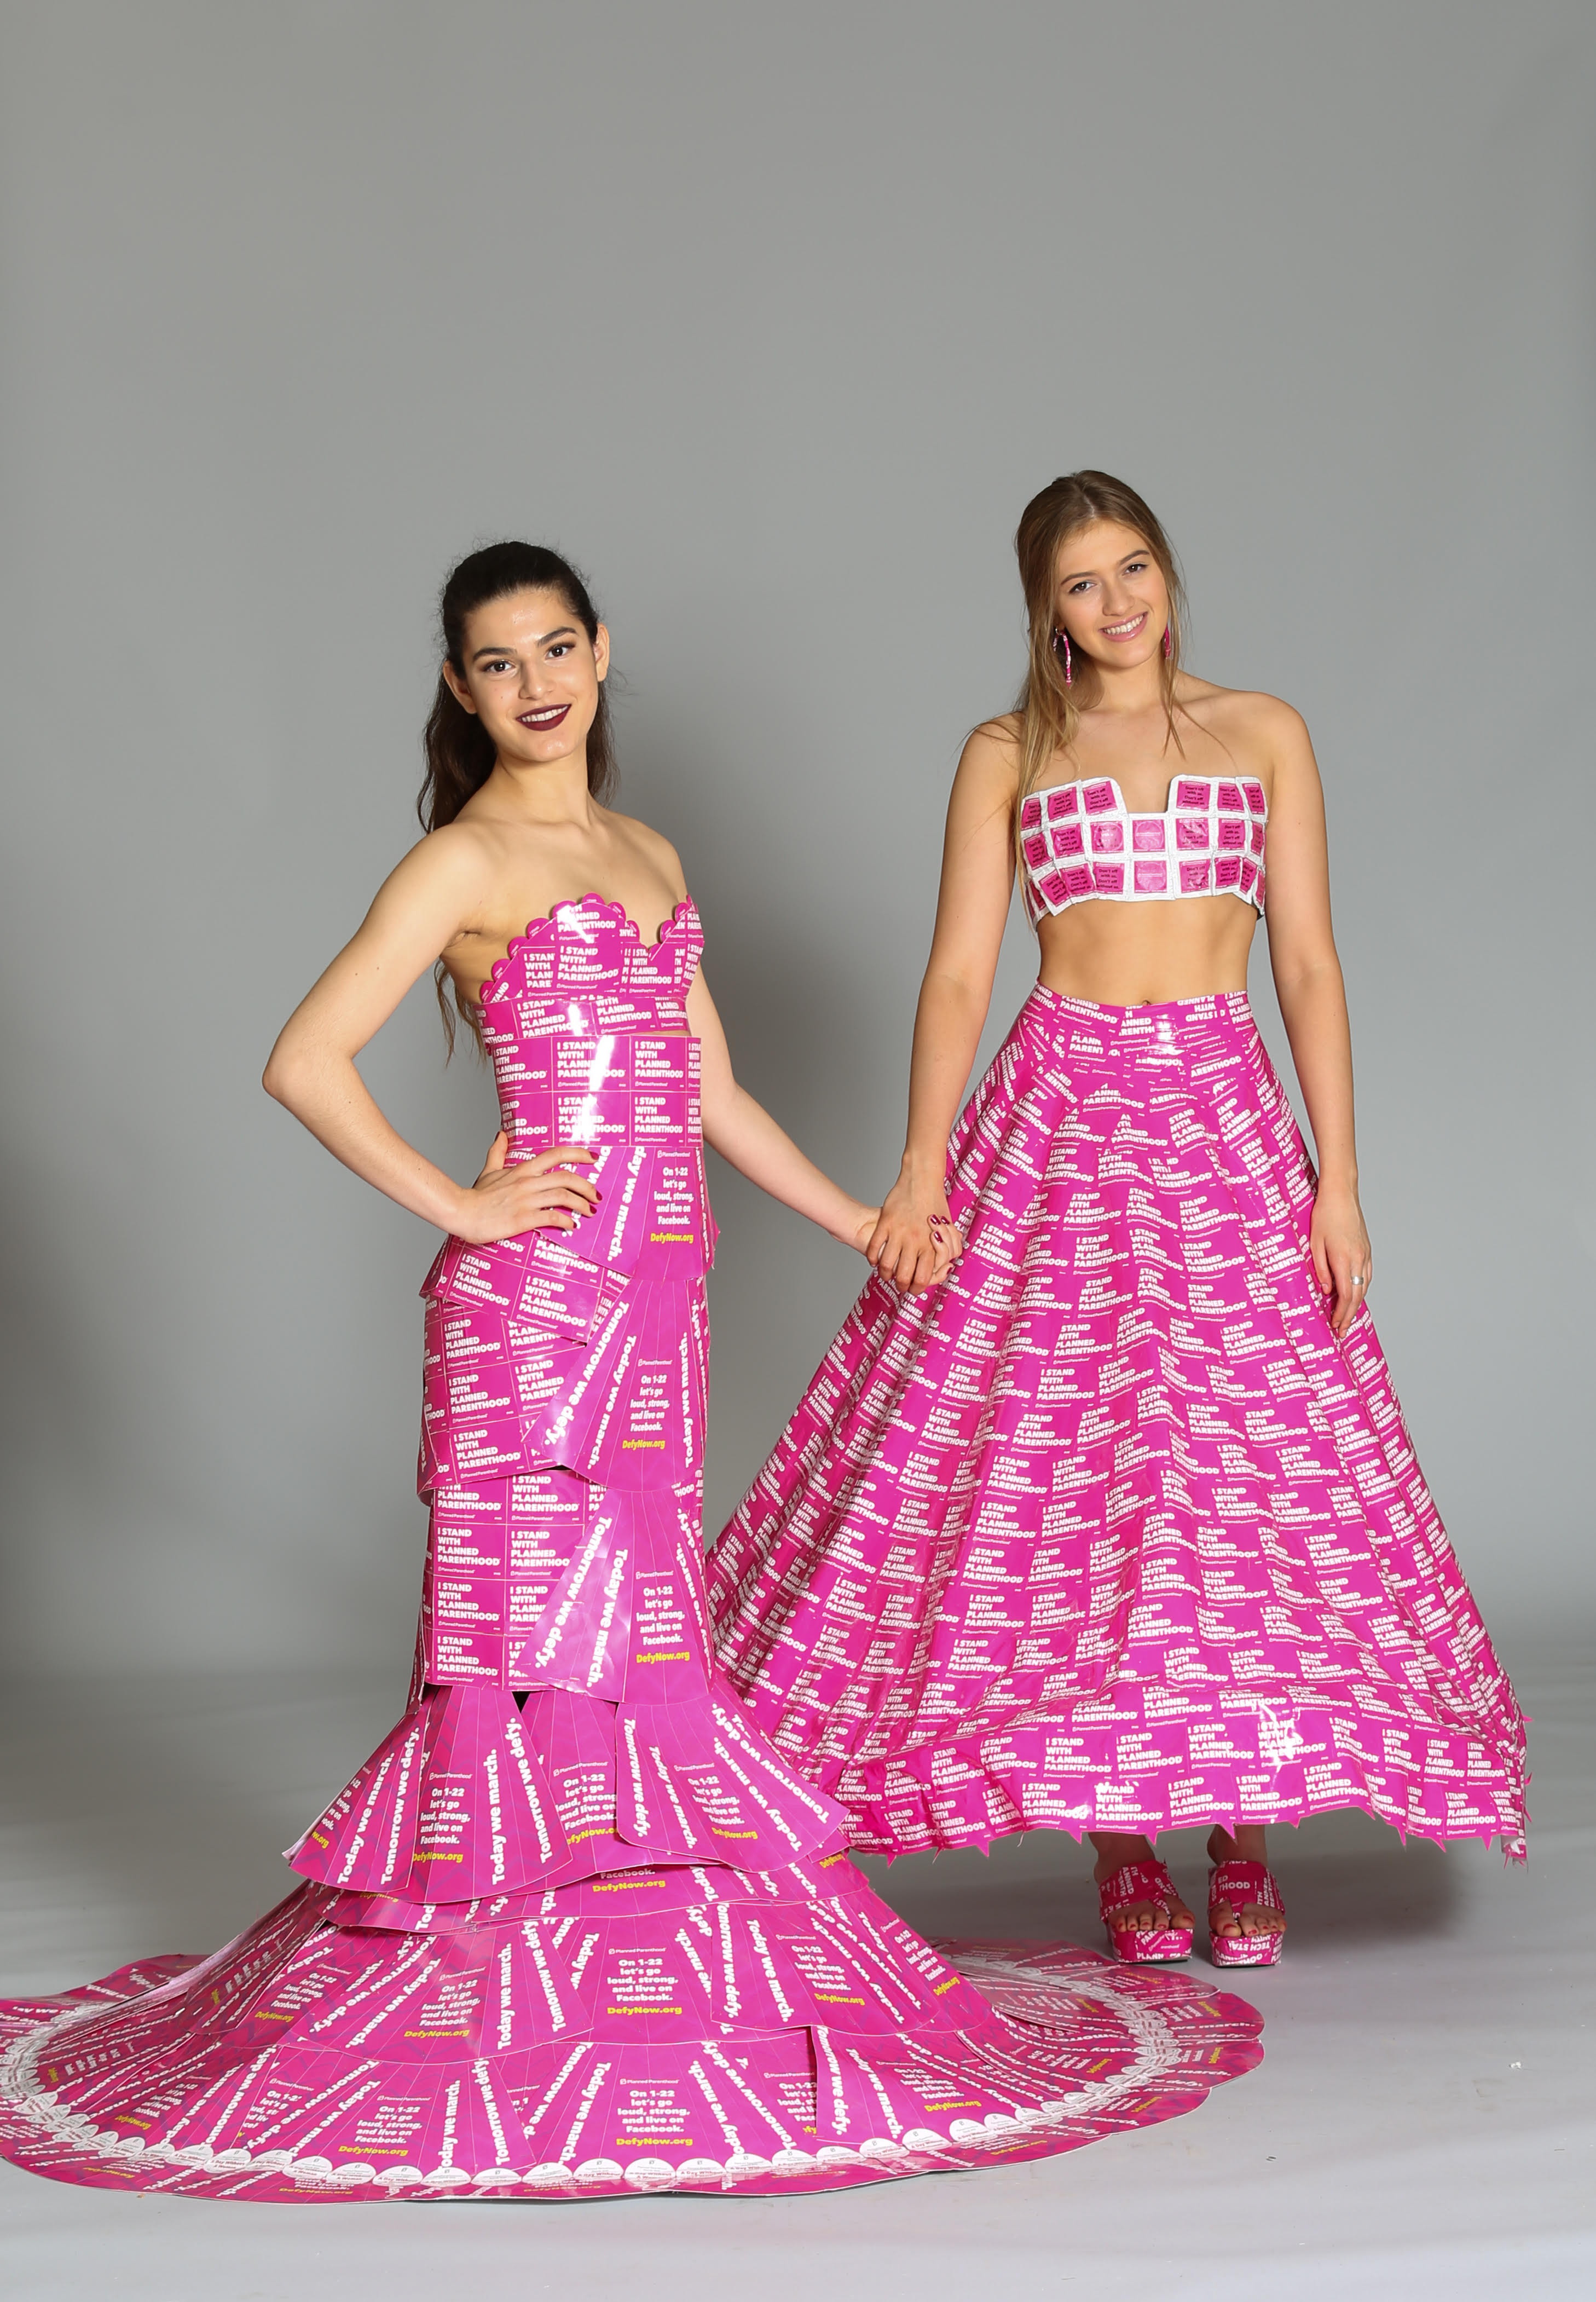 Montes (left) and Belastri (right) created their dresses entirely out of informational materials from Planned Parenthood.